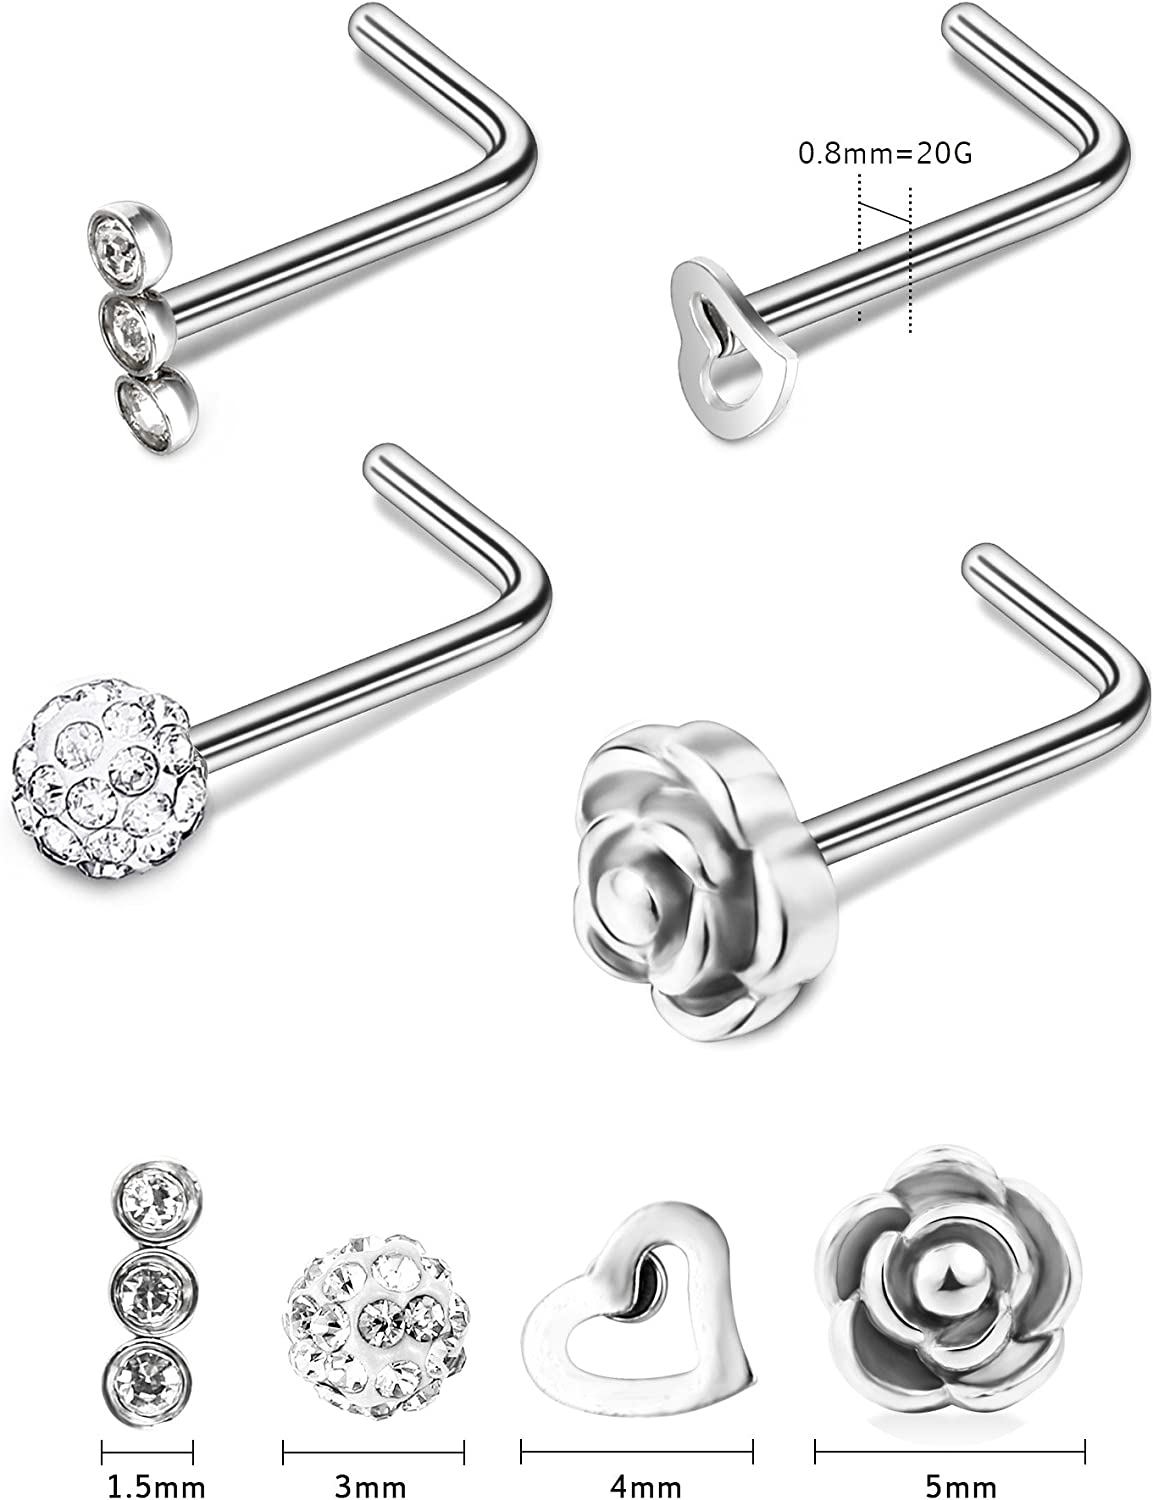 Tiny 20 g 2 mm Zircone cubique Gem Acier Nez Vis Clous Anneau Pin Body Piercing Narine Jewelry